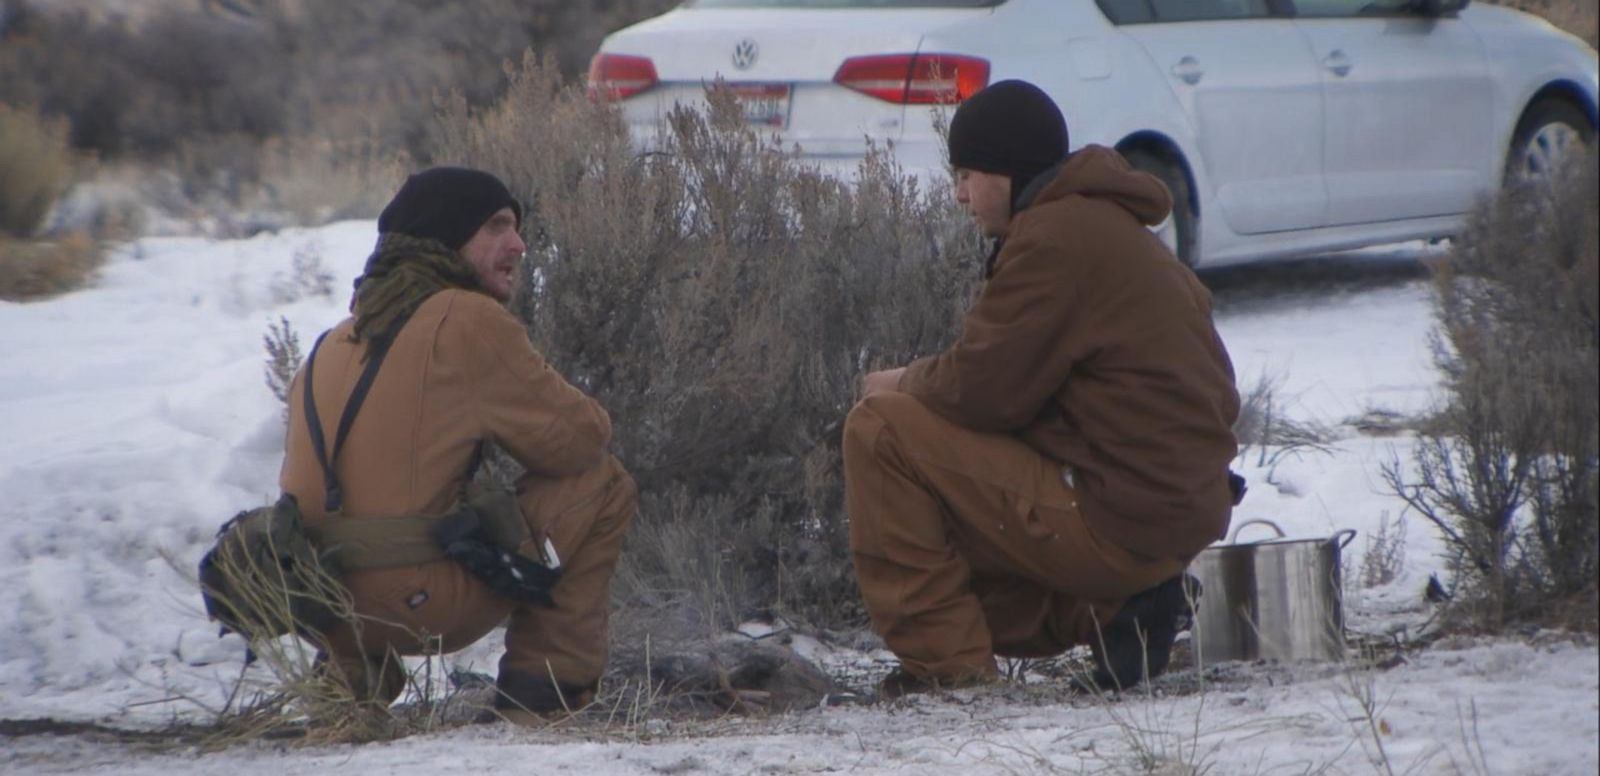 VIDEO: Oregon Occupiers Plan to Turn Themselves In